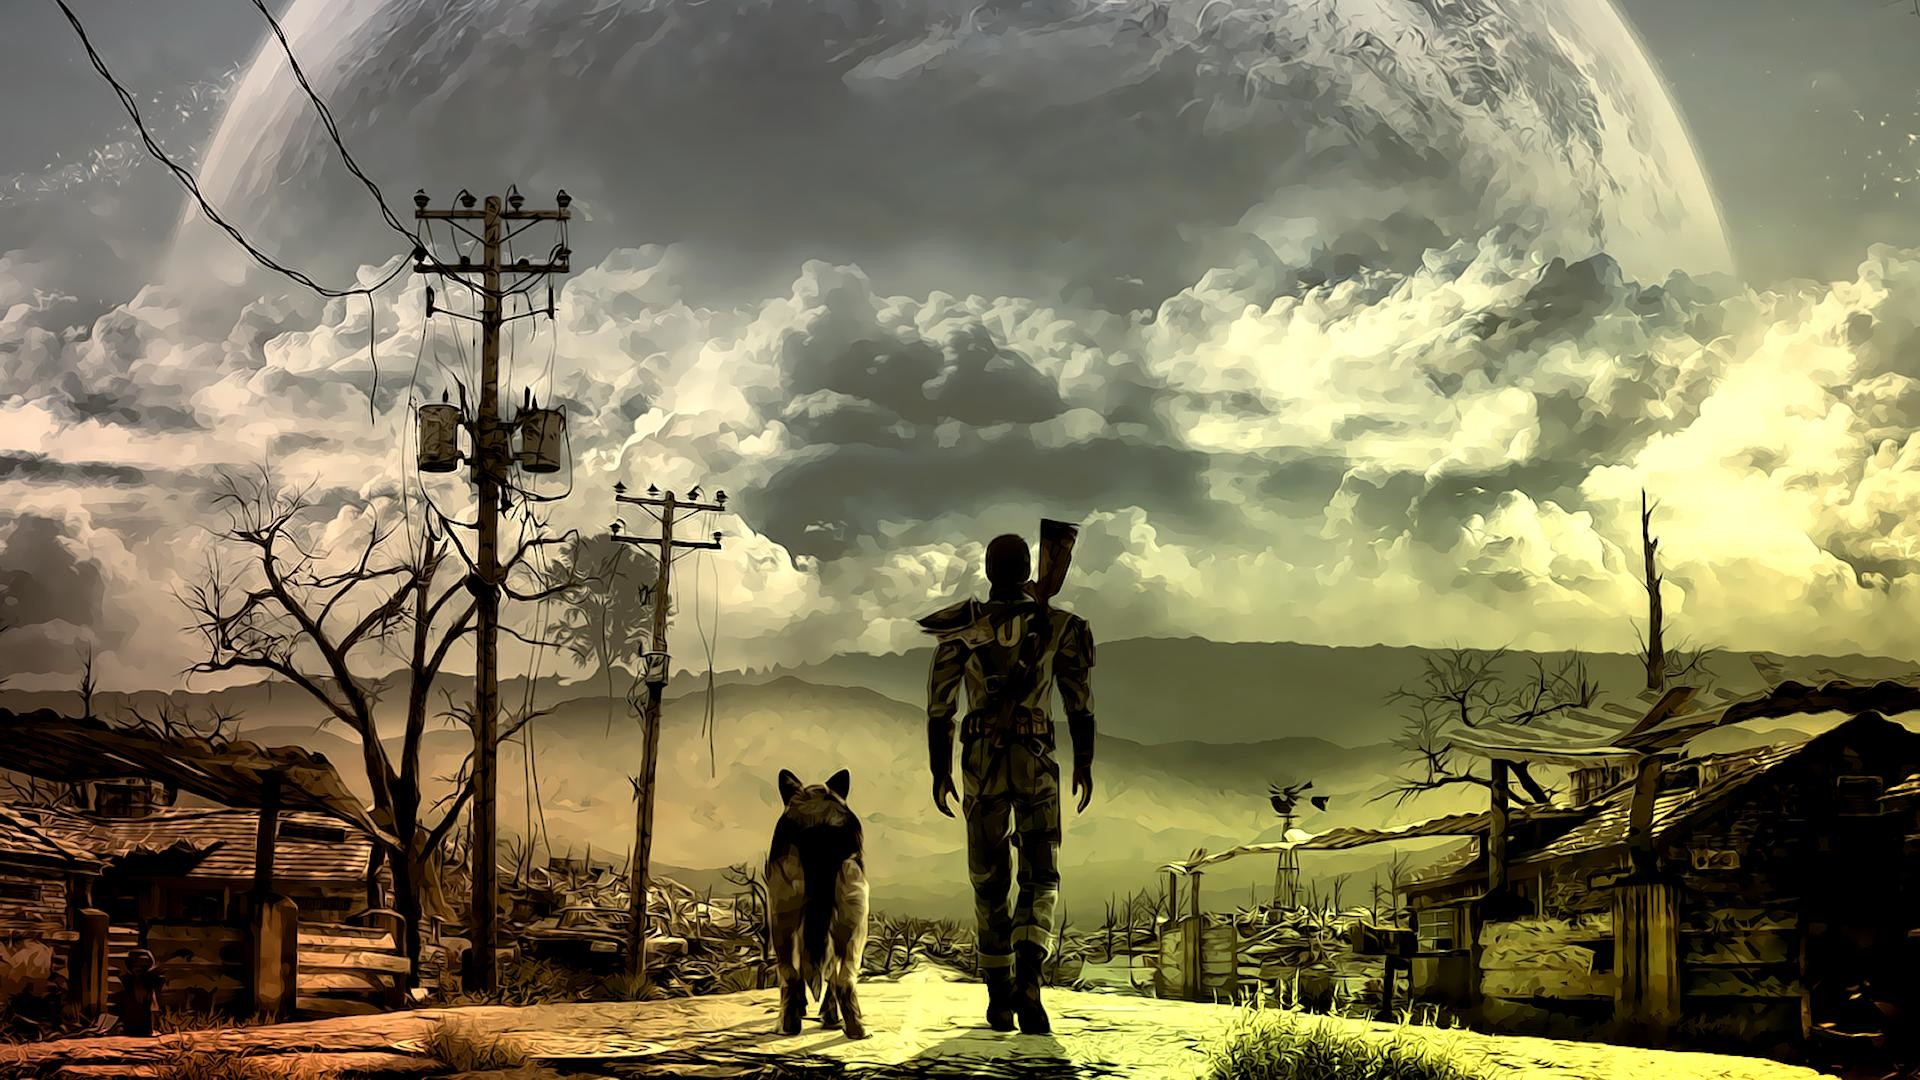 Fall In for Fallout | Fallout 4 Video Review